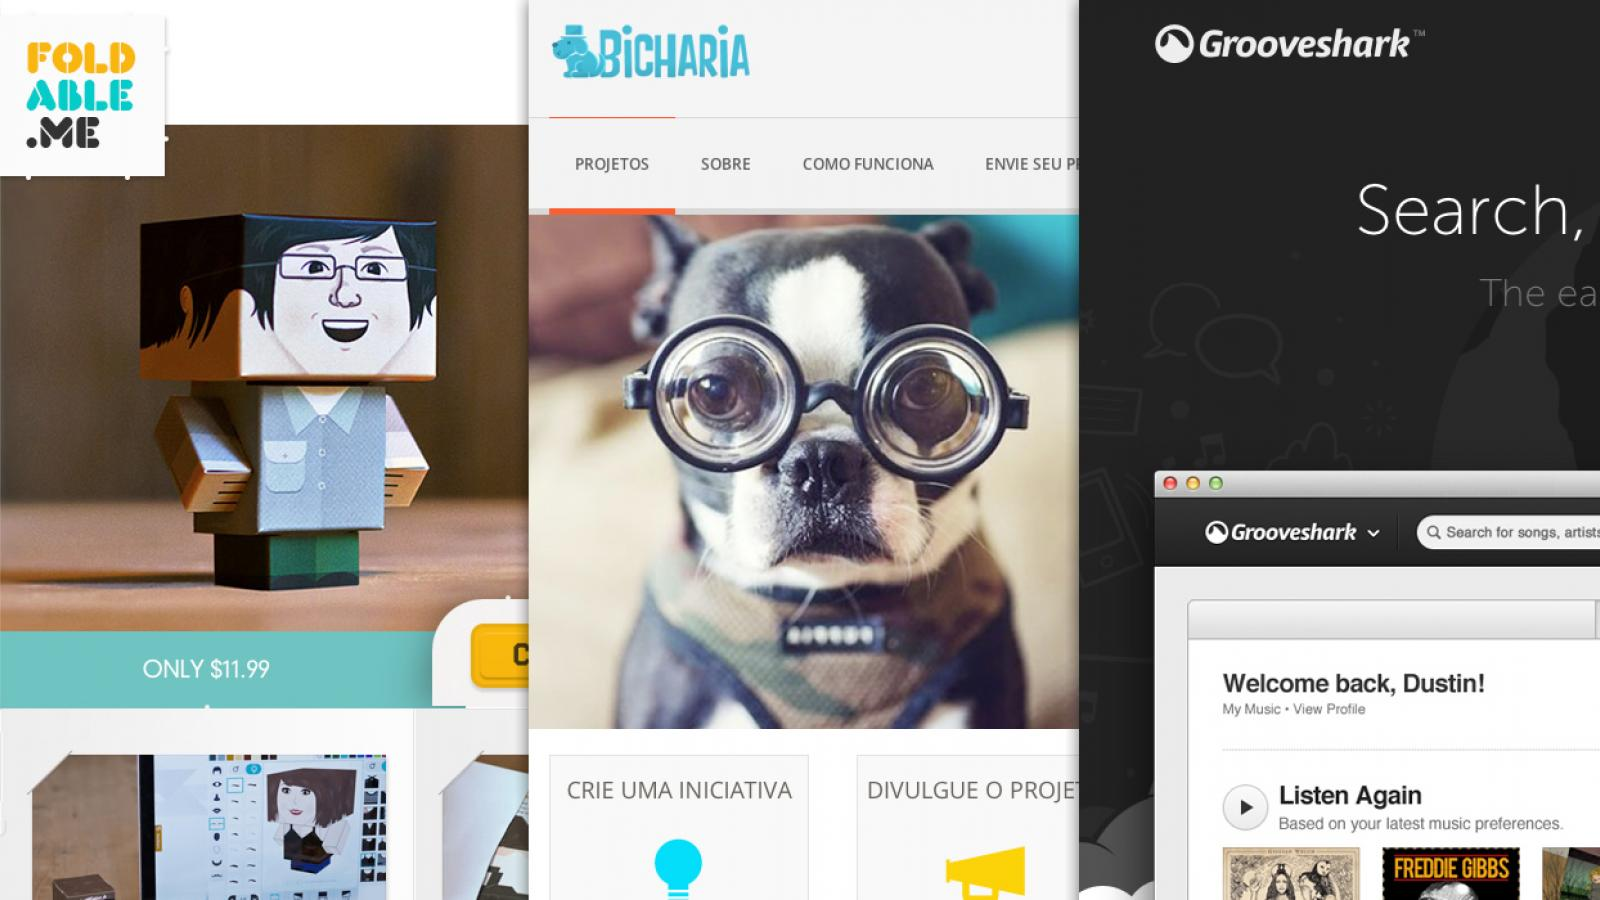 Sites of the Week: Grooveshark, Bicharia, 45royale and more